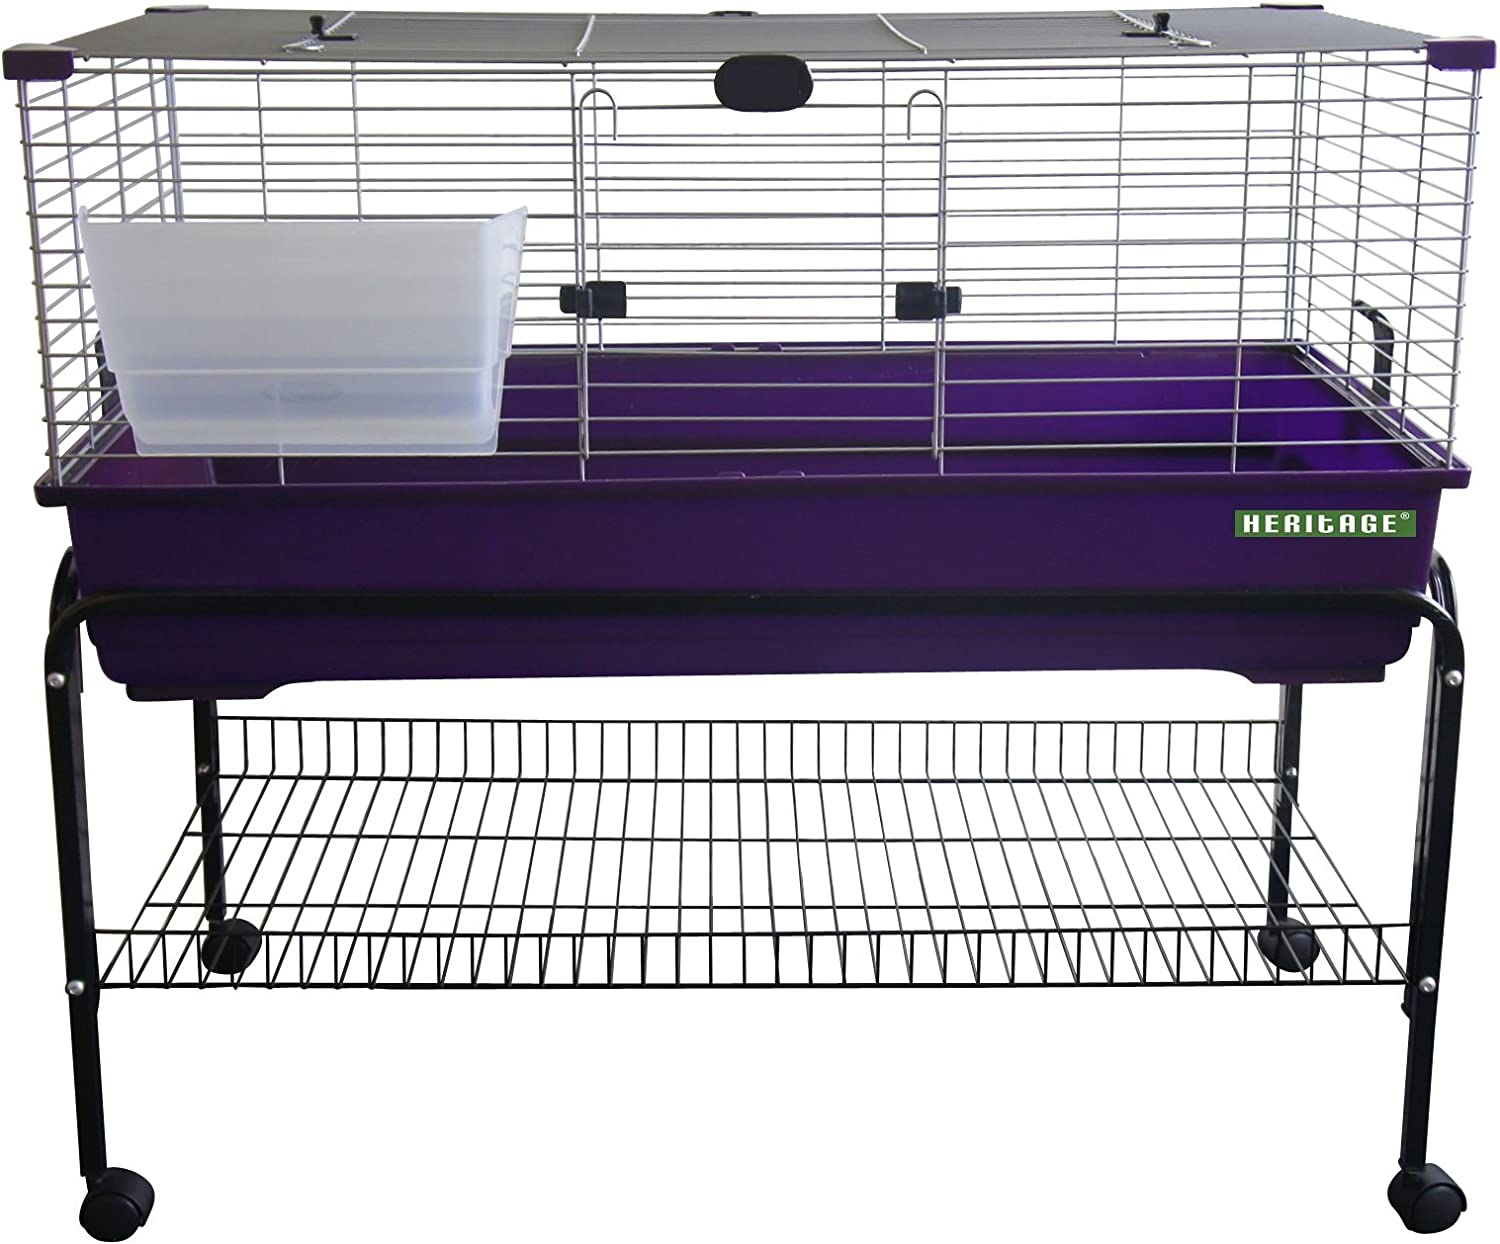 Heritage Rabbit Cage With Stand Package Deal  80cm or 100cm Indoor Bunny Cages & Stand, With Shelf & Wheels (80cm Purple Rabbit Cage with Stand Package)